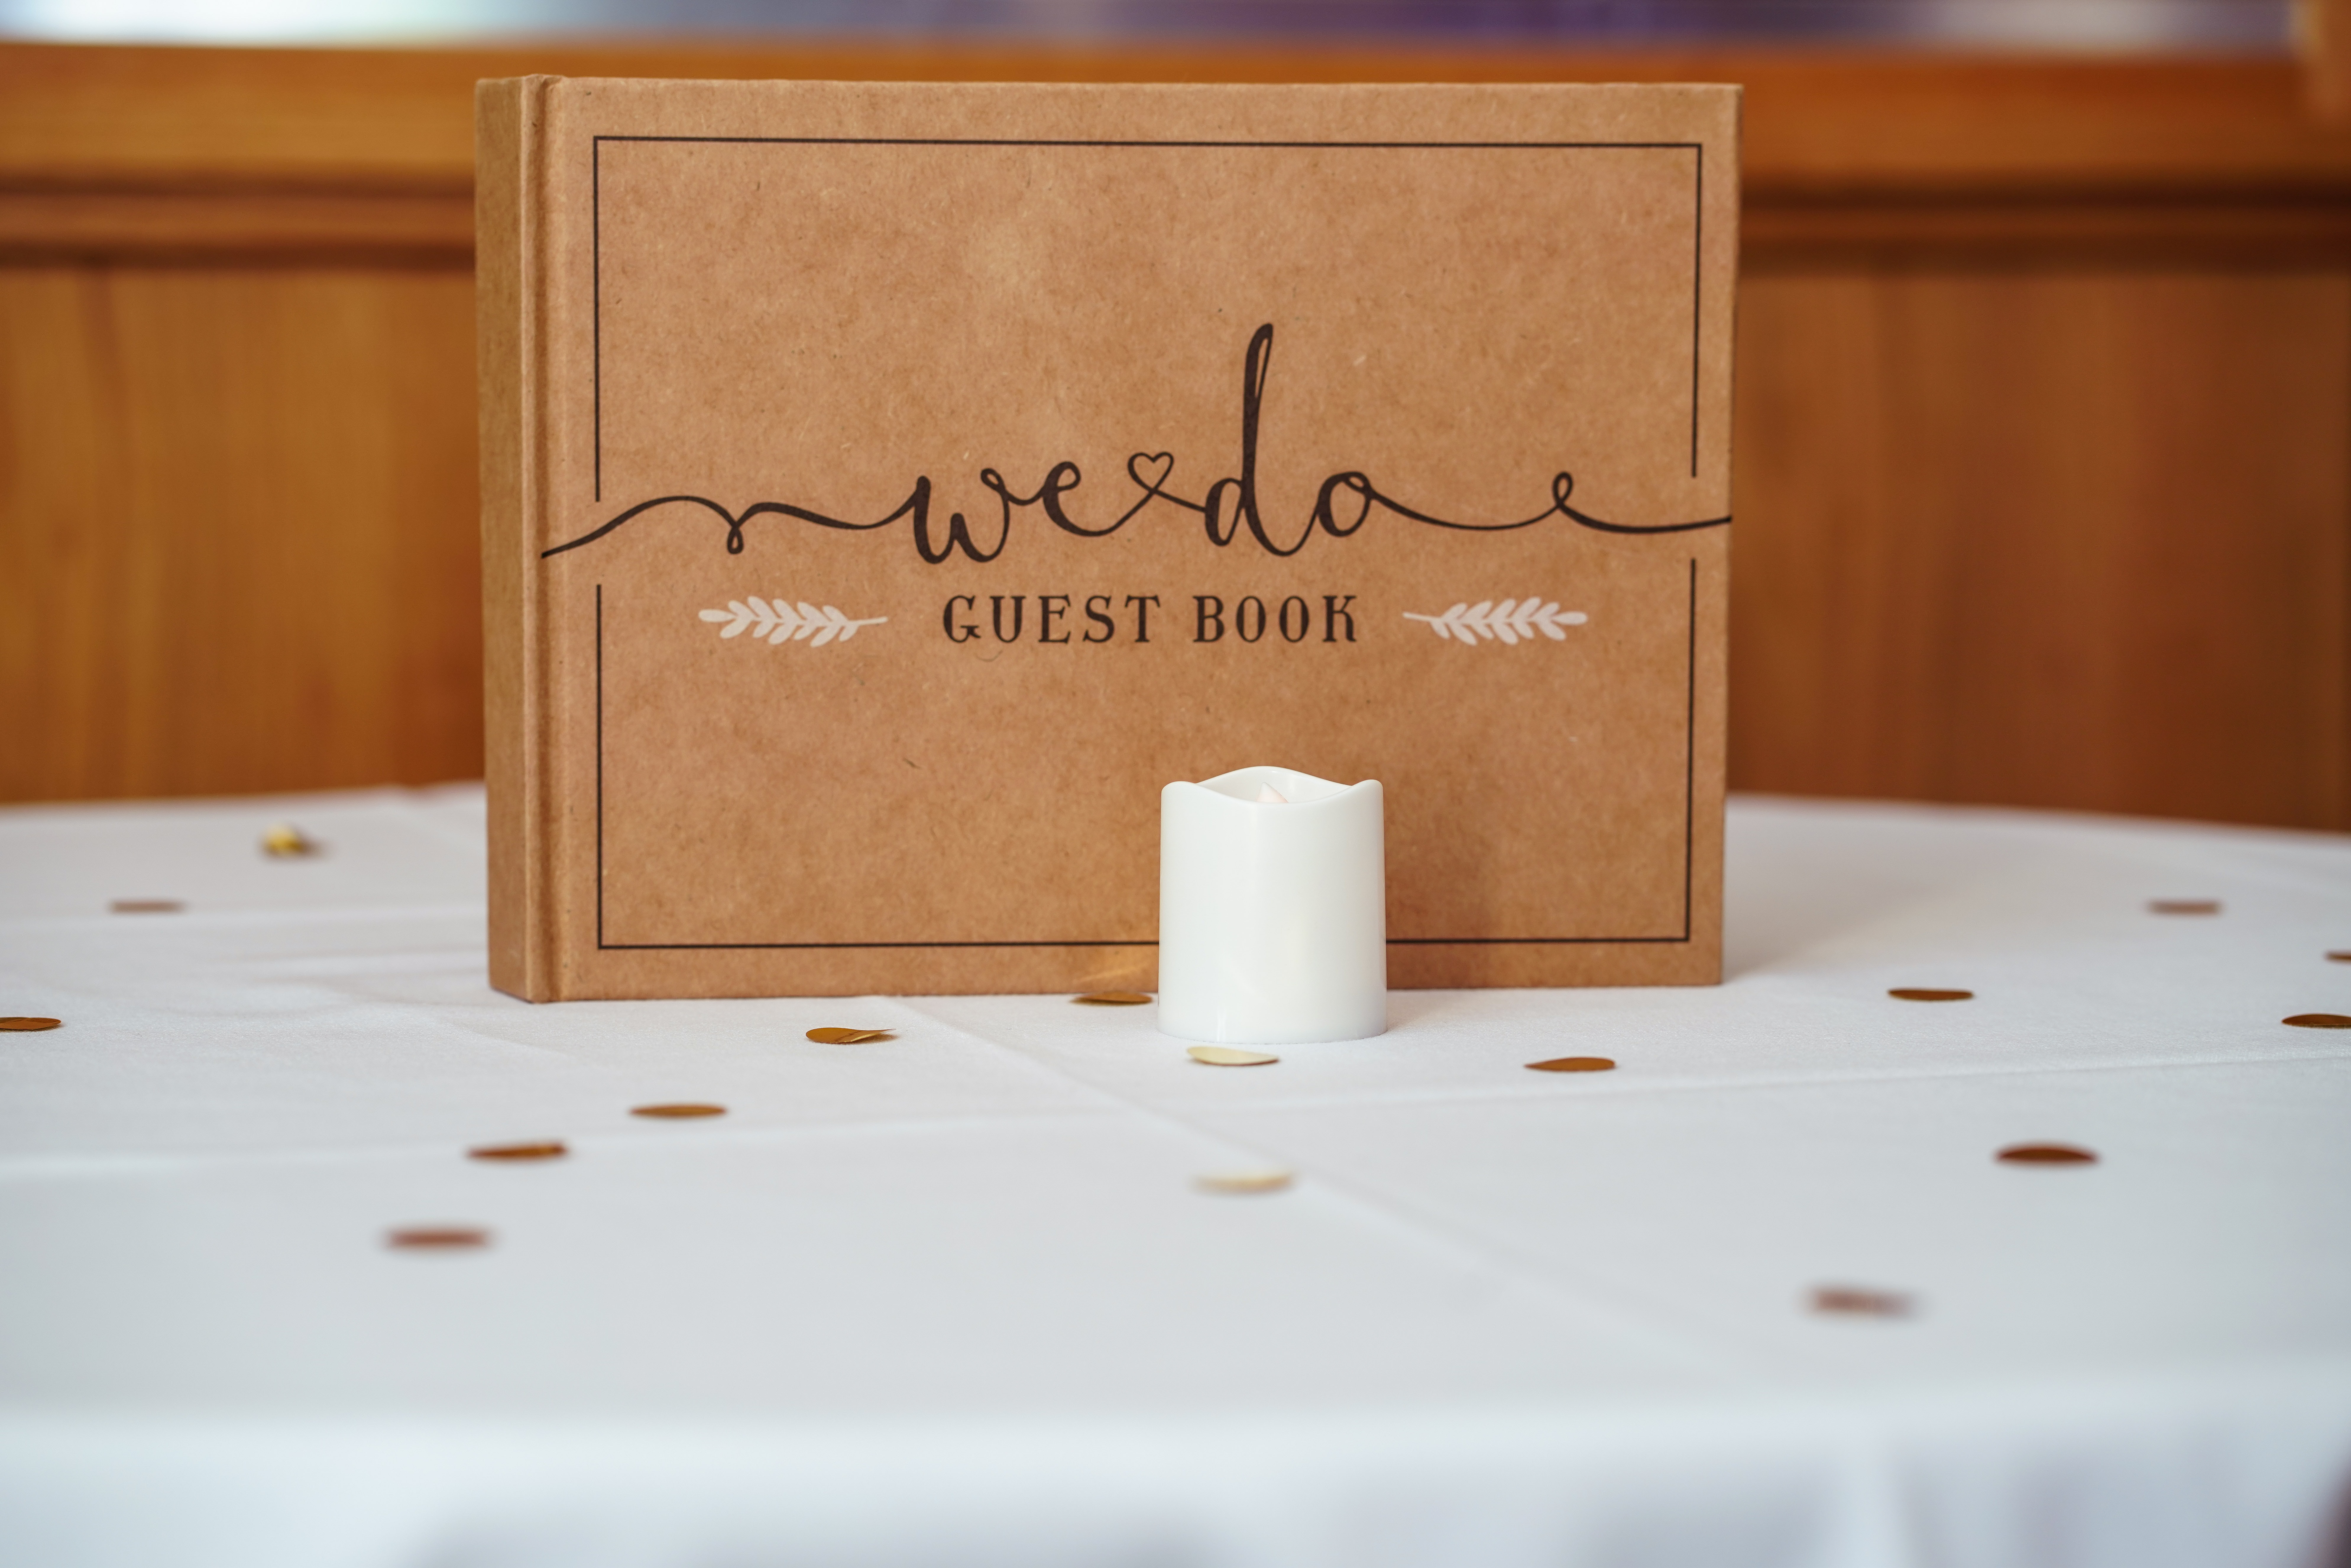 brown Weedo guestbook on table